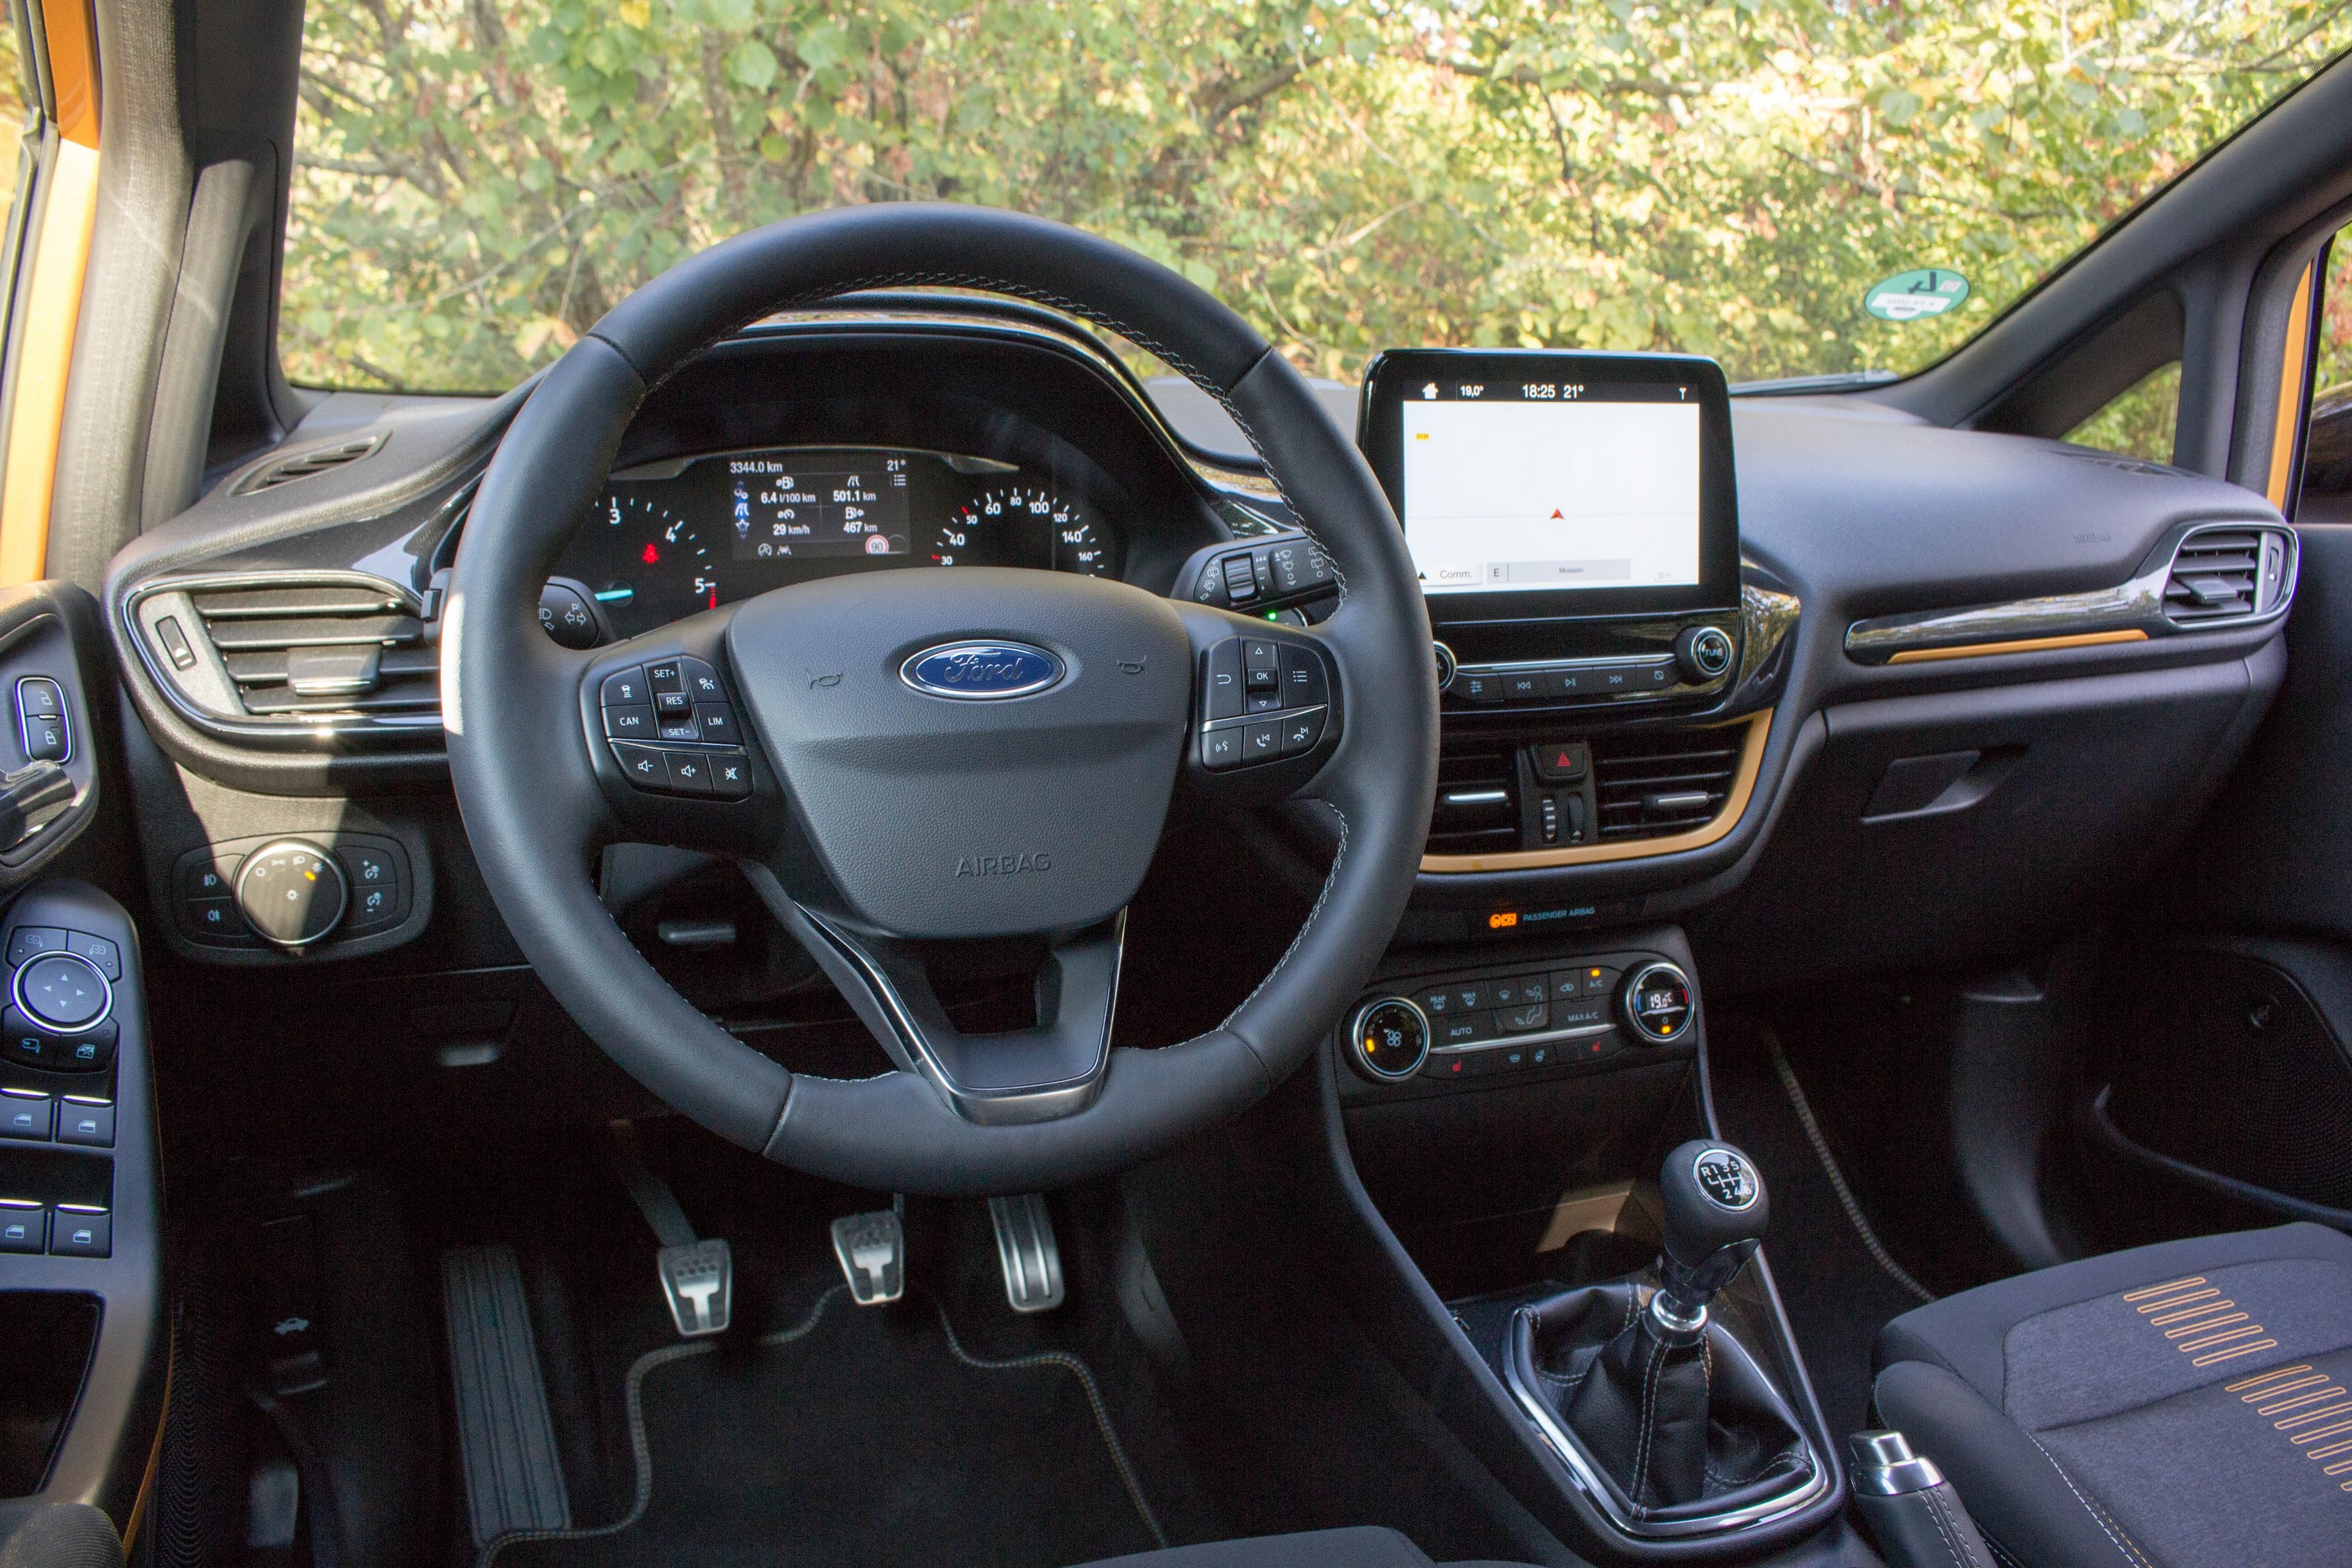 Ford Fiesta Active habitacle